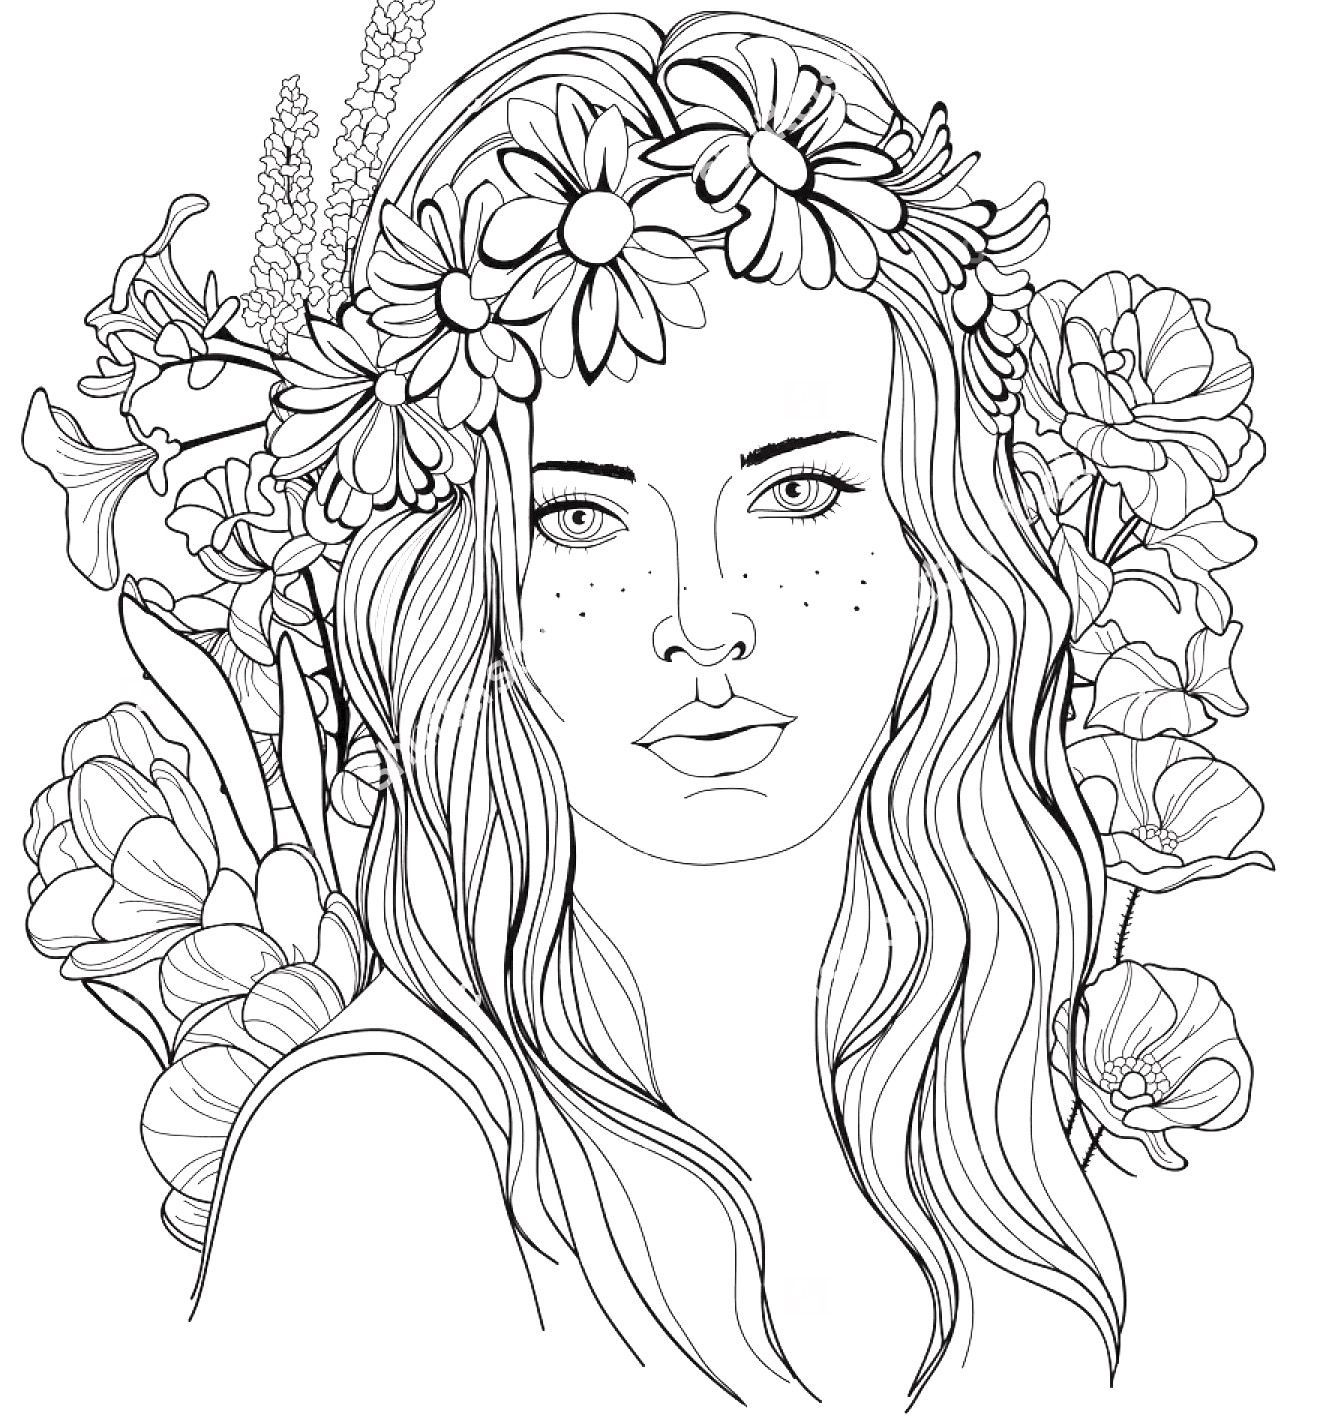 Coloring pages portraits - Image Of A Girl With A Floral Wreath In Her Hair Coloring Page